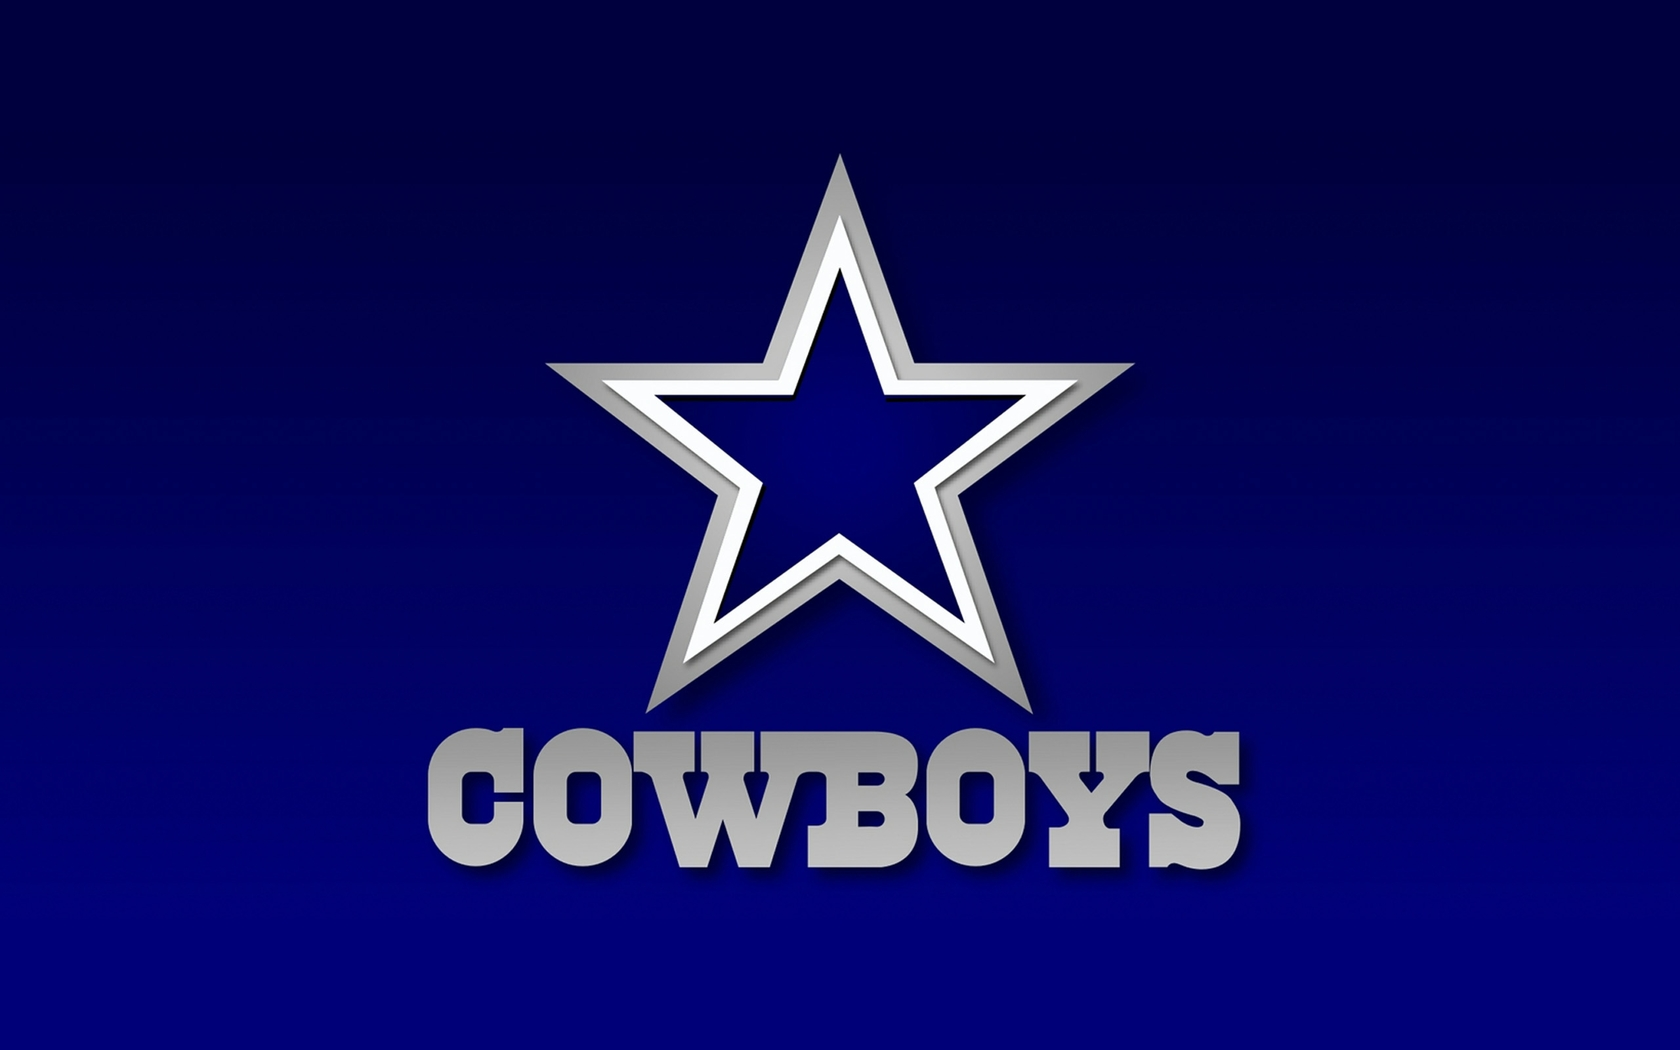 Dallas Cowboys background image